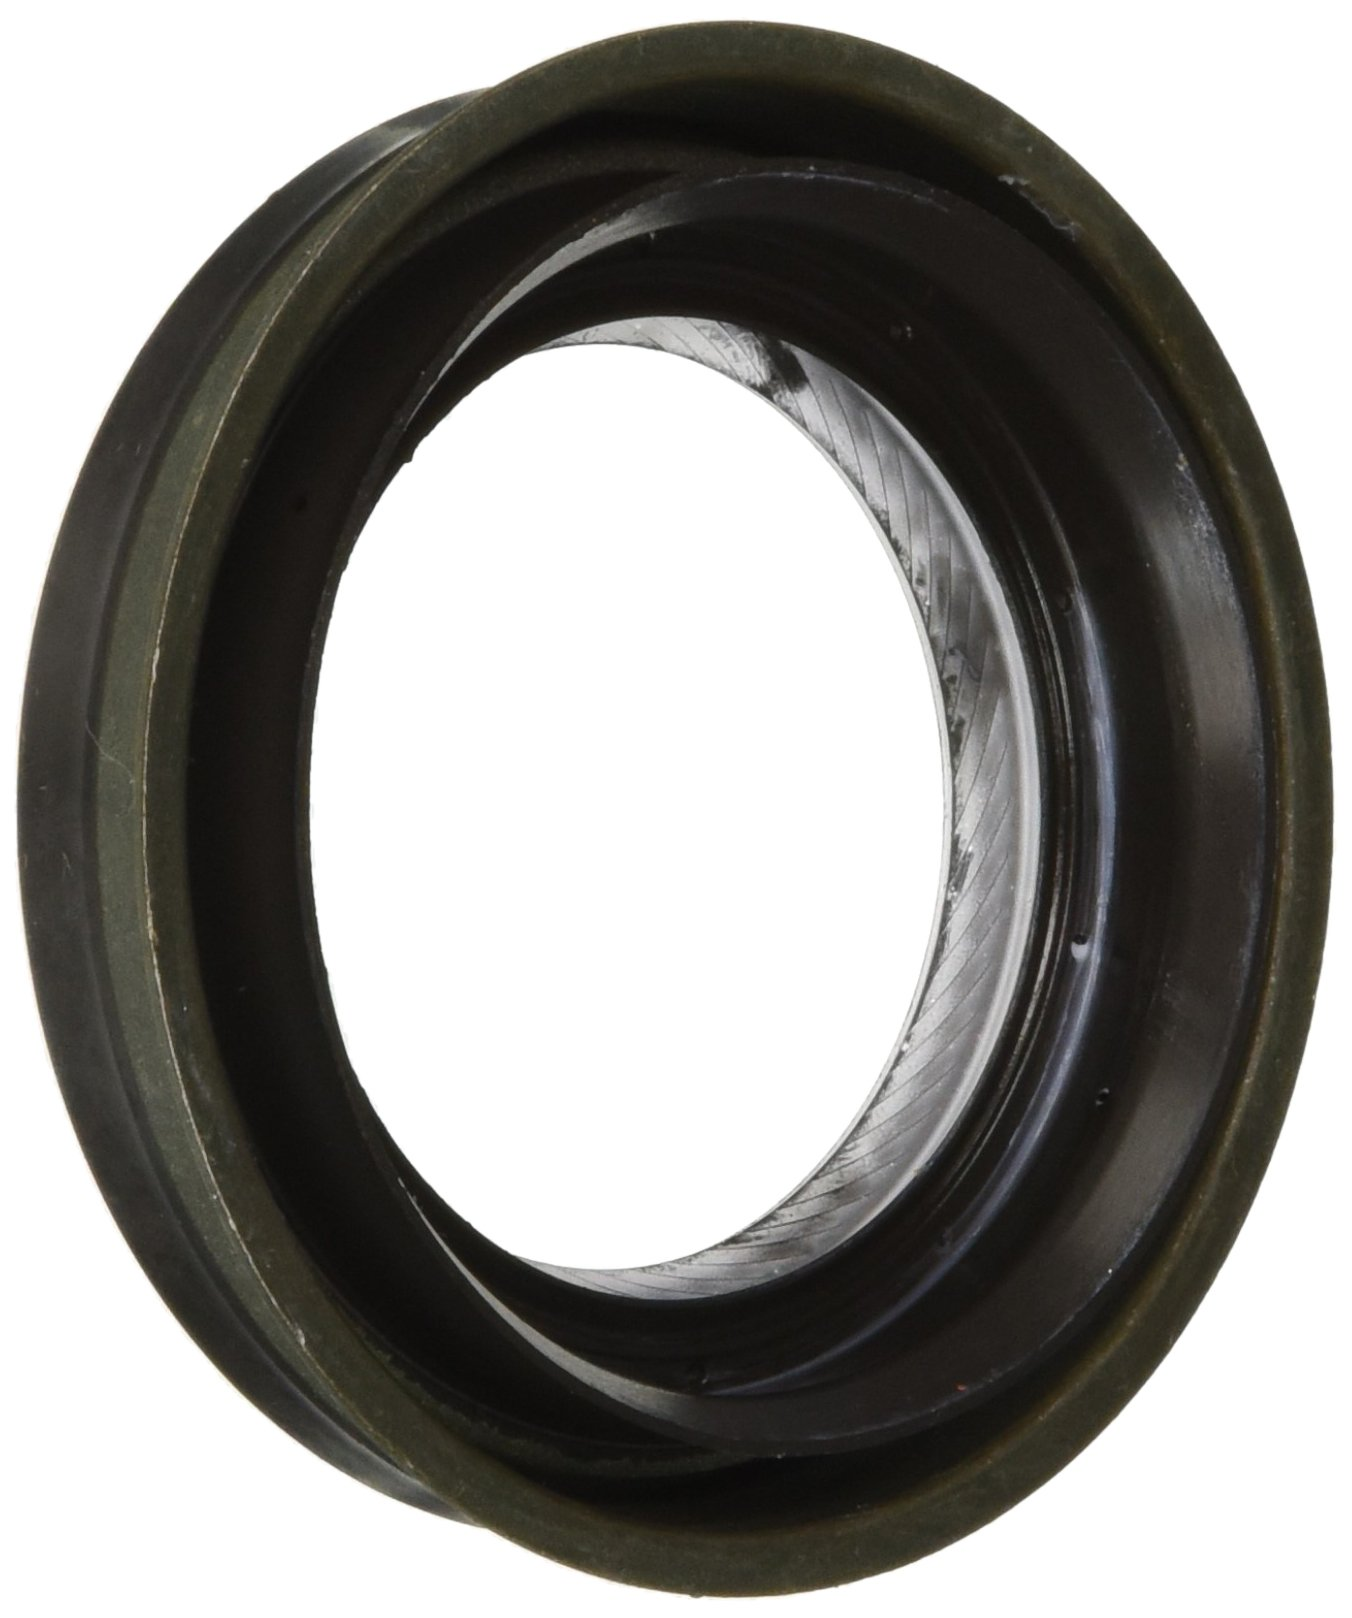 ACDelco 22943111 GM Original Equipment Differential Drive Pinion Gear Seal by ACDelco